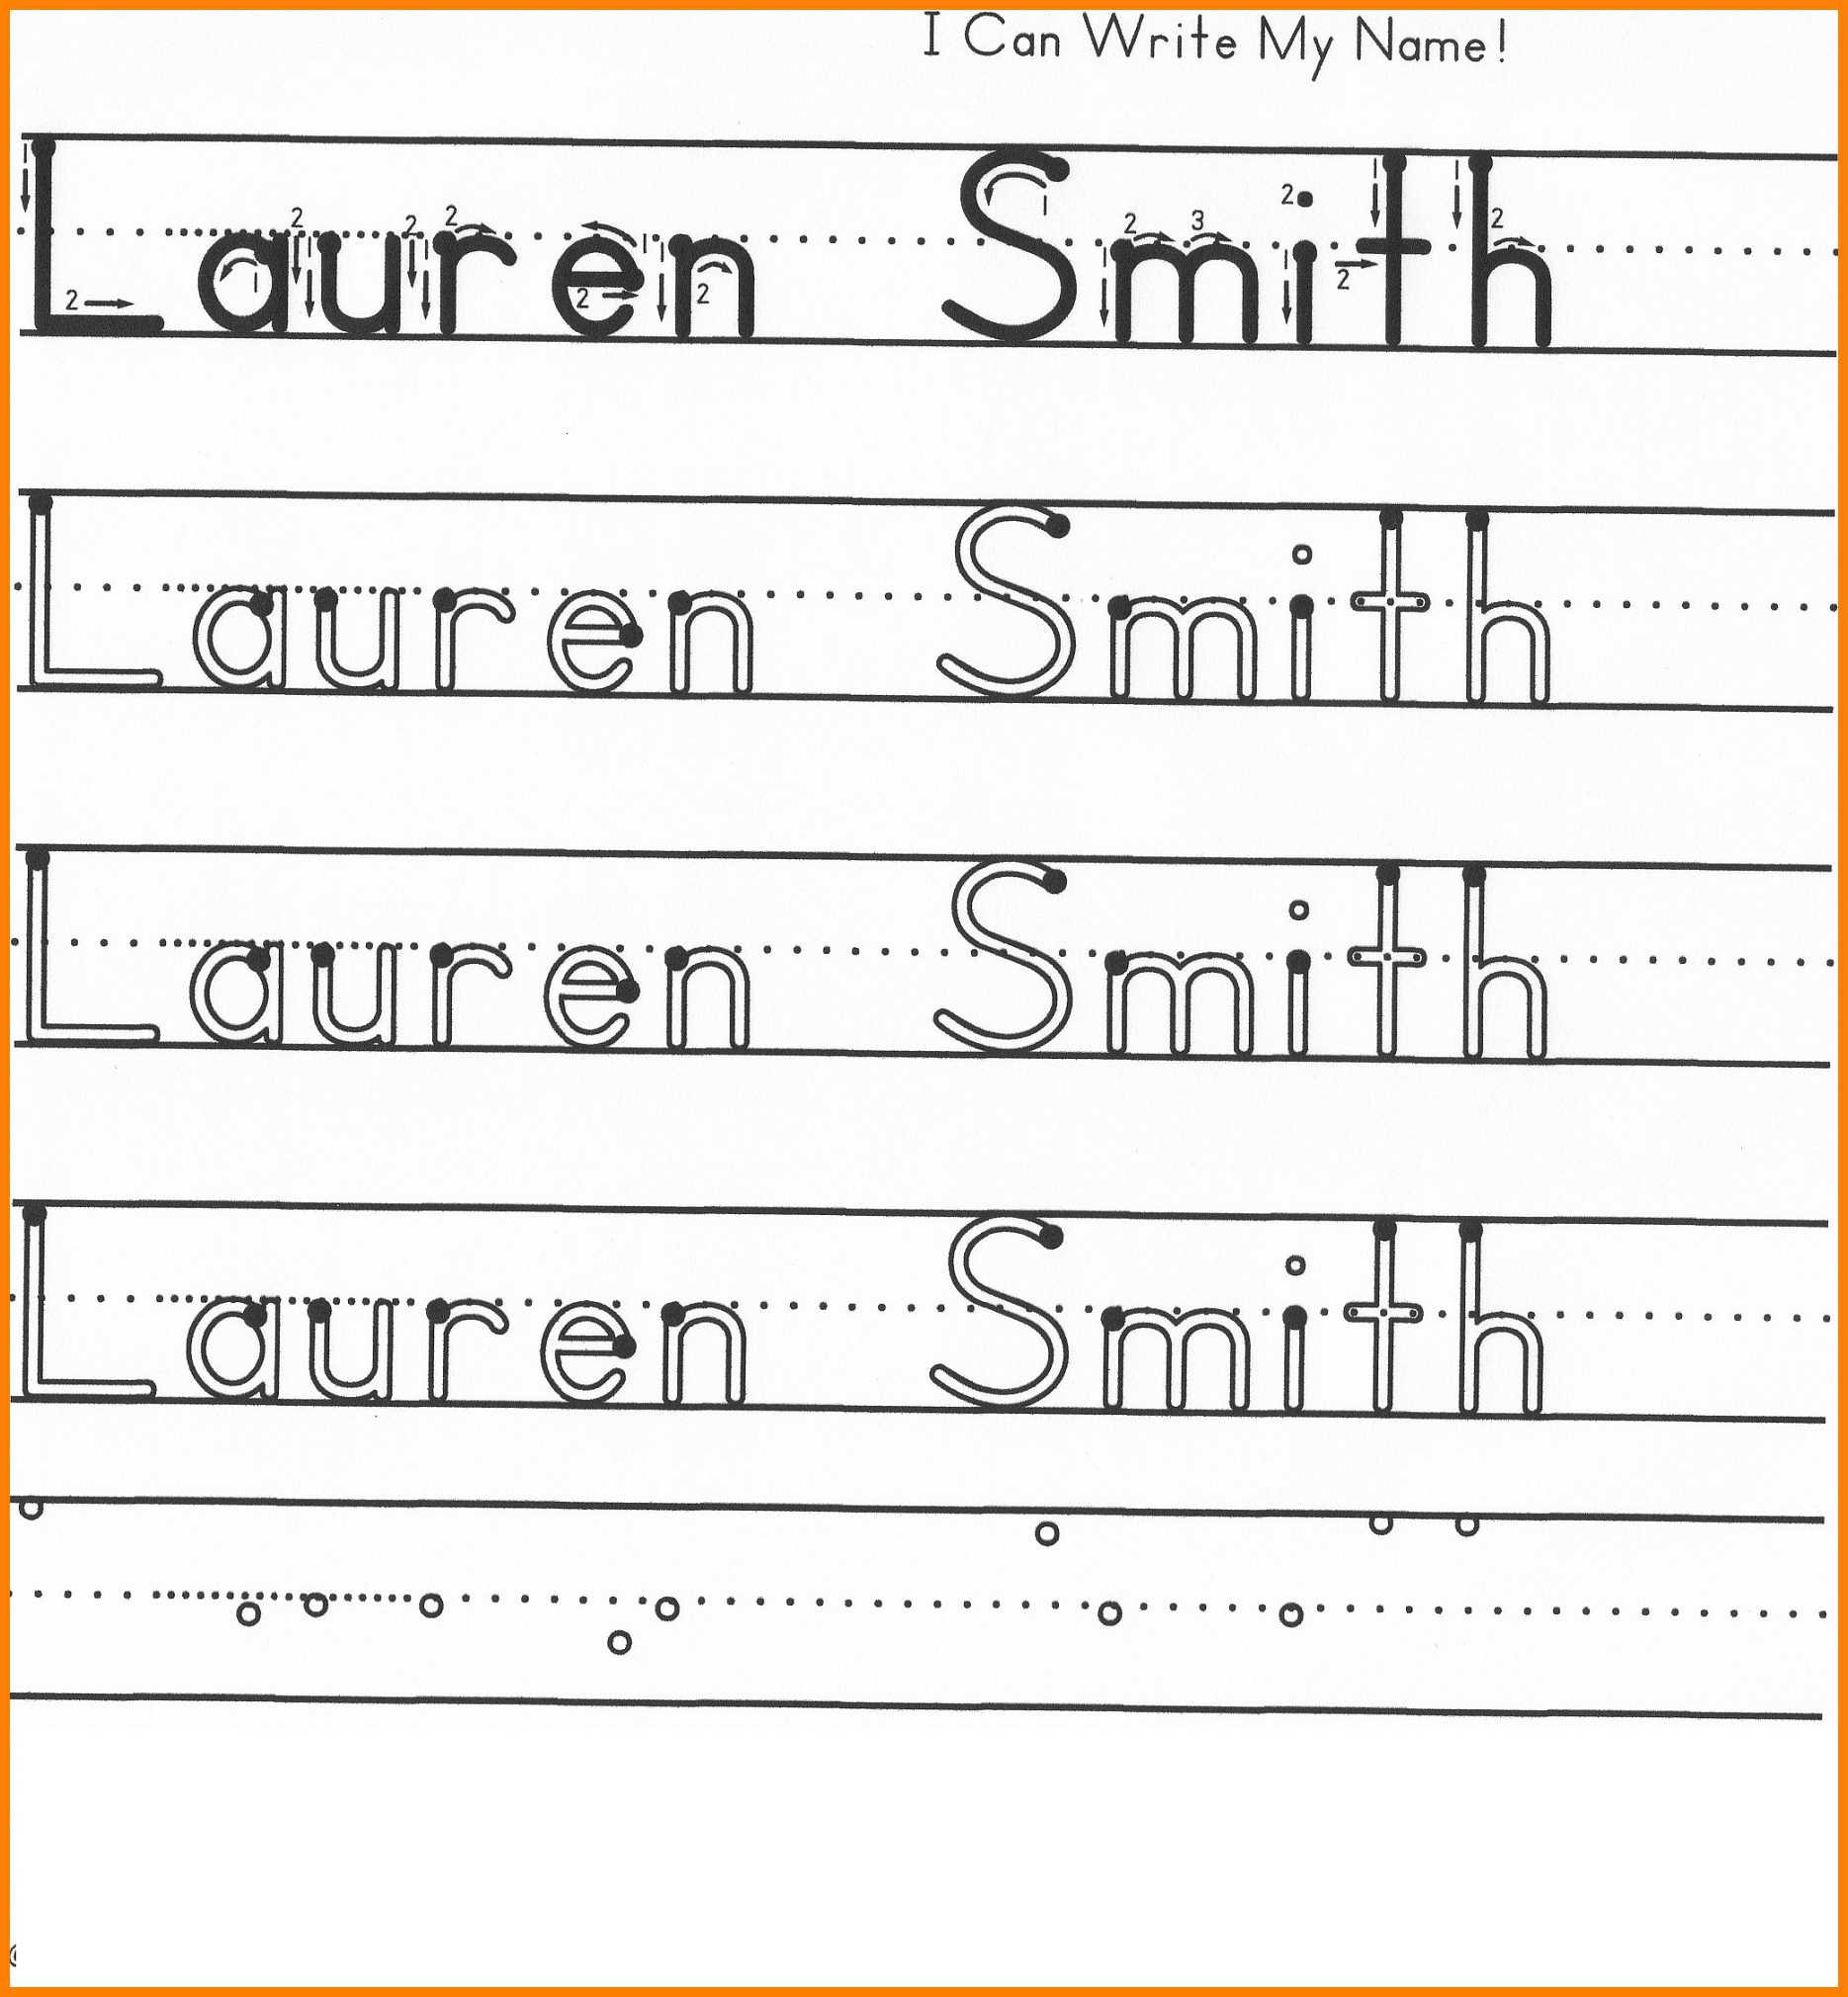 Worksheet Tracing Name Worksheets Trace Worksheet As Writing With Regard To Traceable Name Worksheets